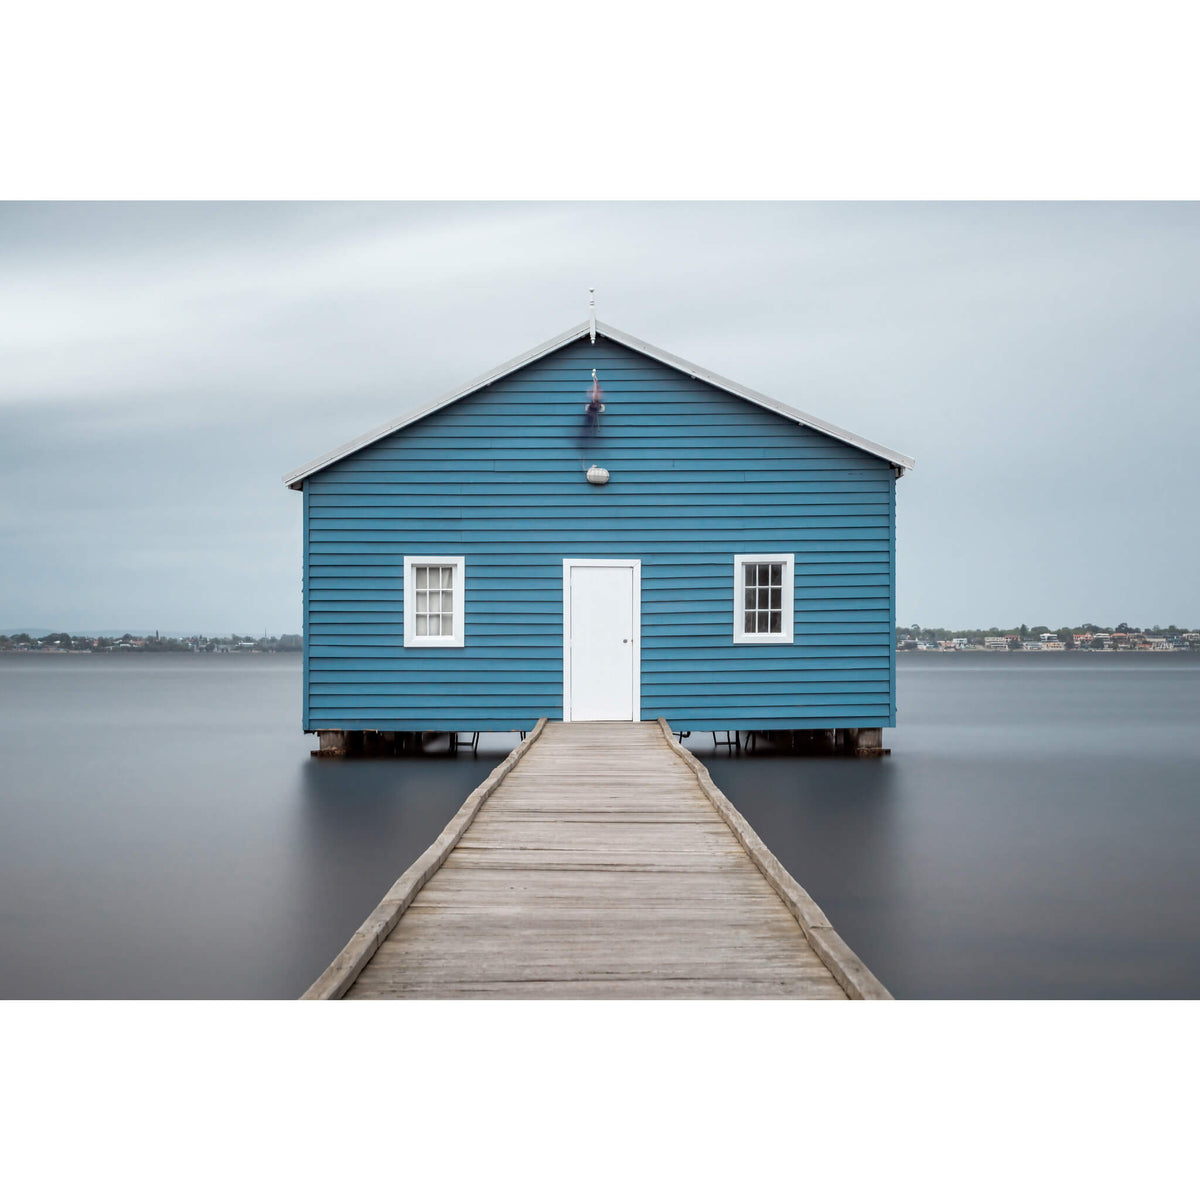 Crawley Edge Boatshed | Landscapes Fine Art Print - Lost Collective Shop